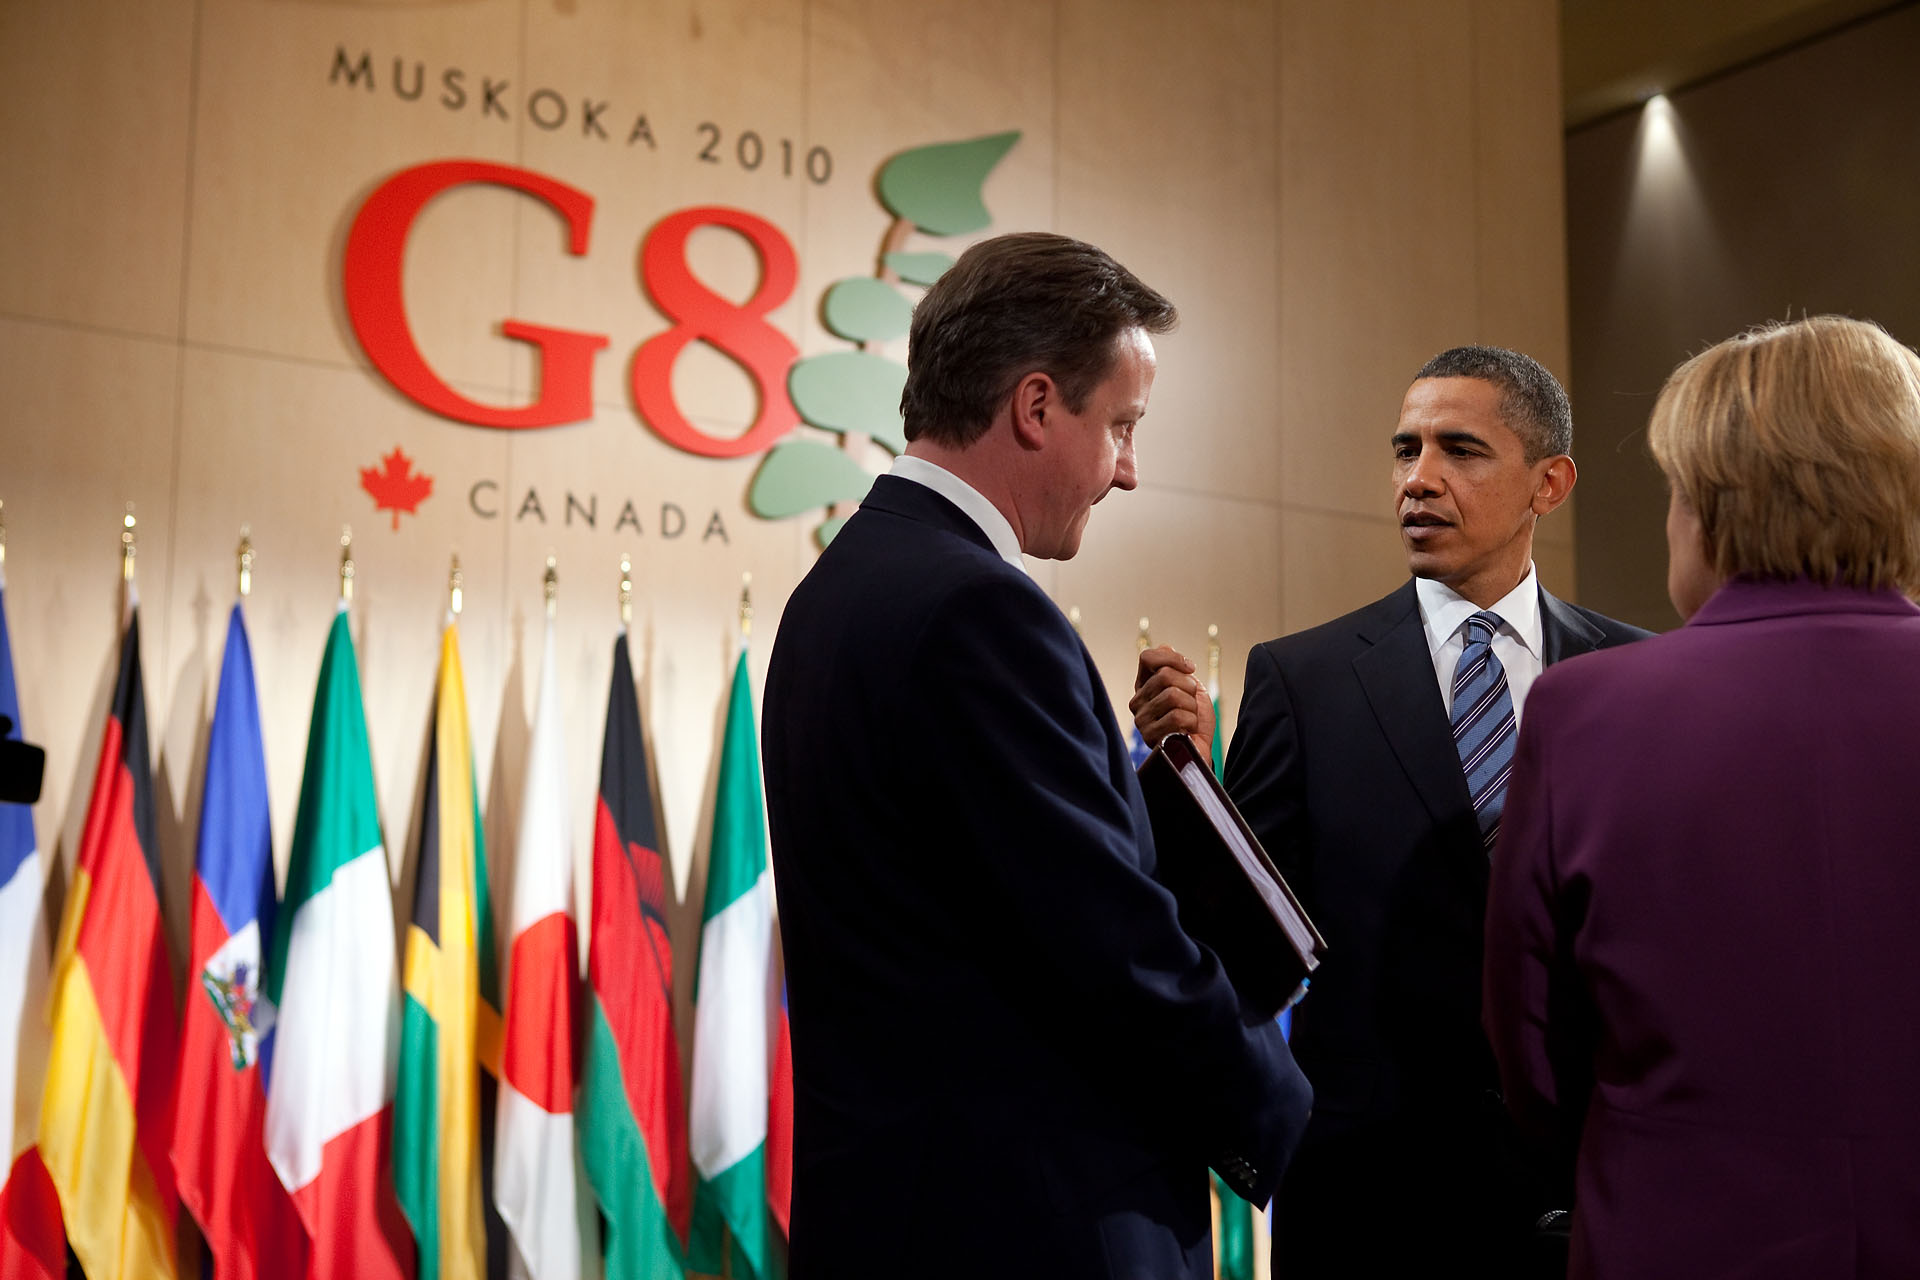 President Barack Obama talks with British Prime Minister David Cameron and German Chancellor Angela Merkel at G8 Summit in Canada